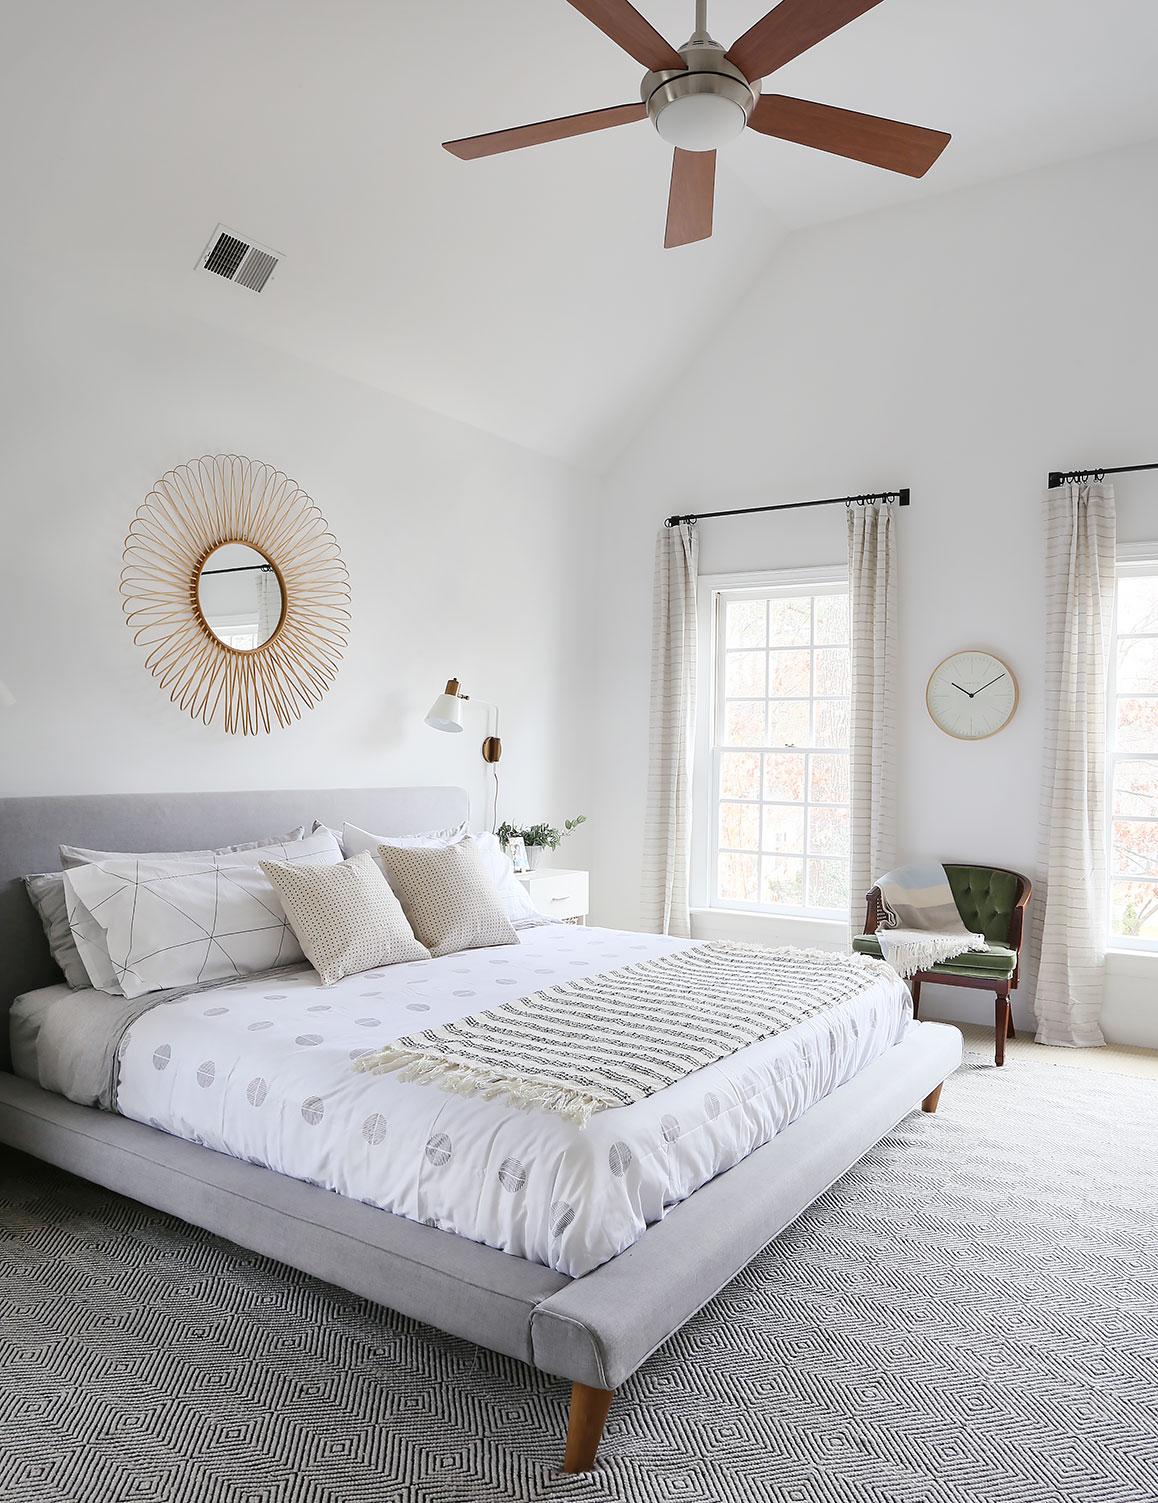 bed   /   bedding   /   rug   /   drapery rods   /   curtains   /   wall light   /   clock